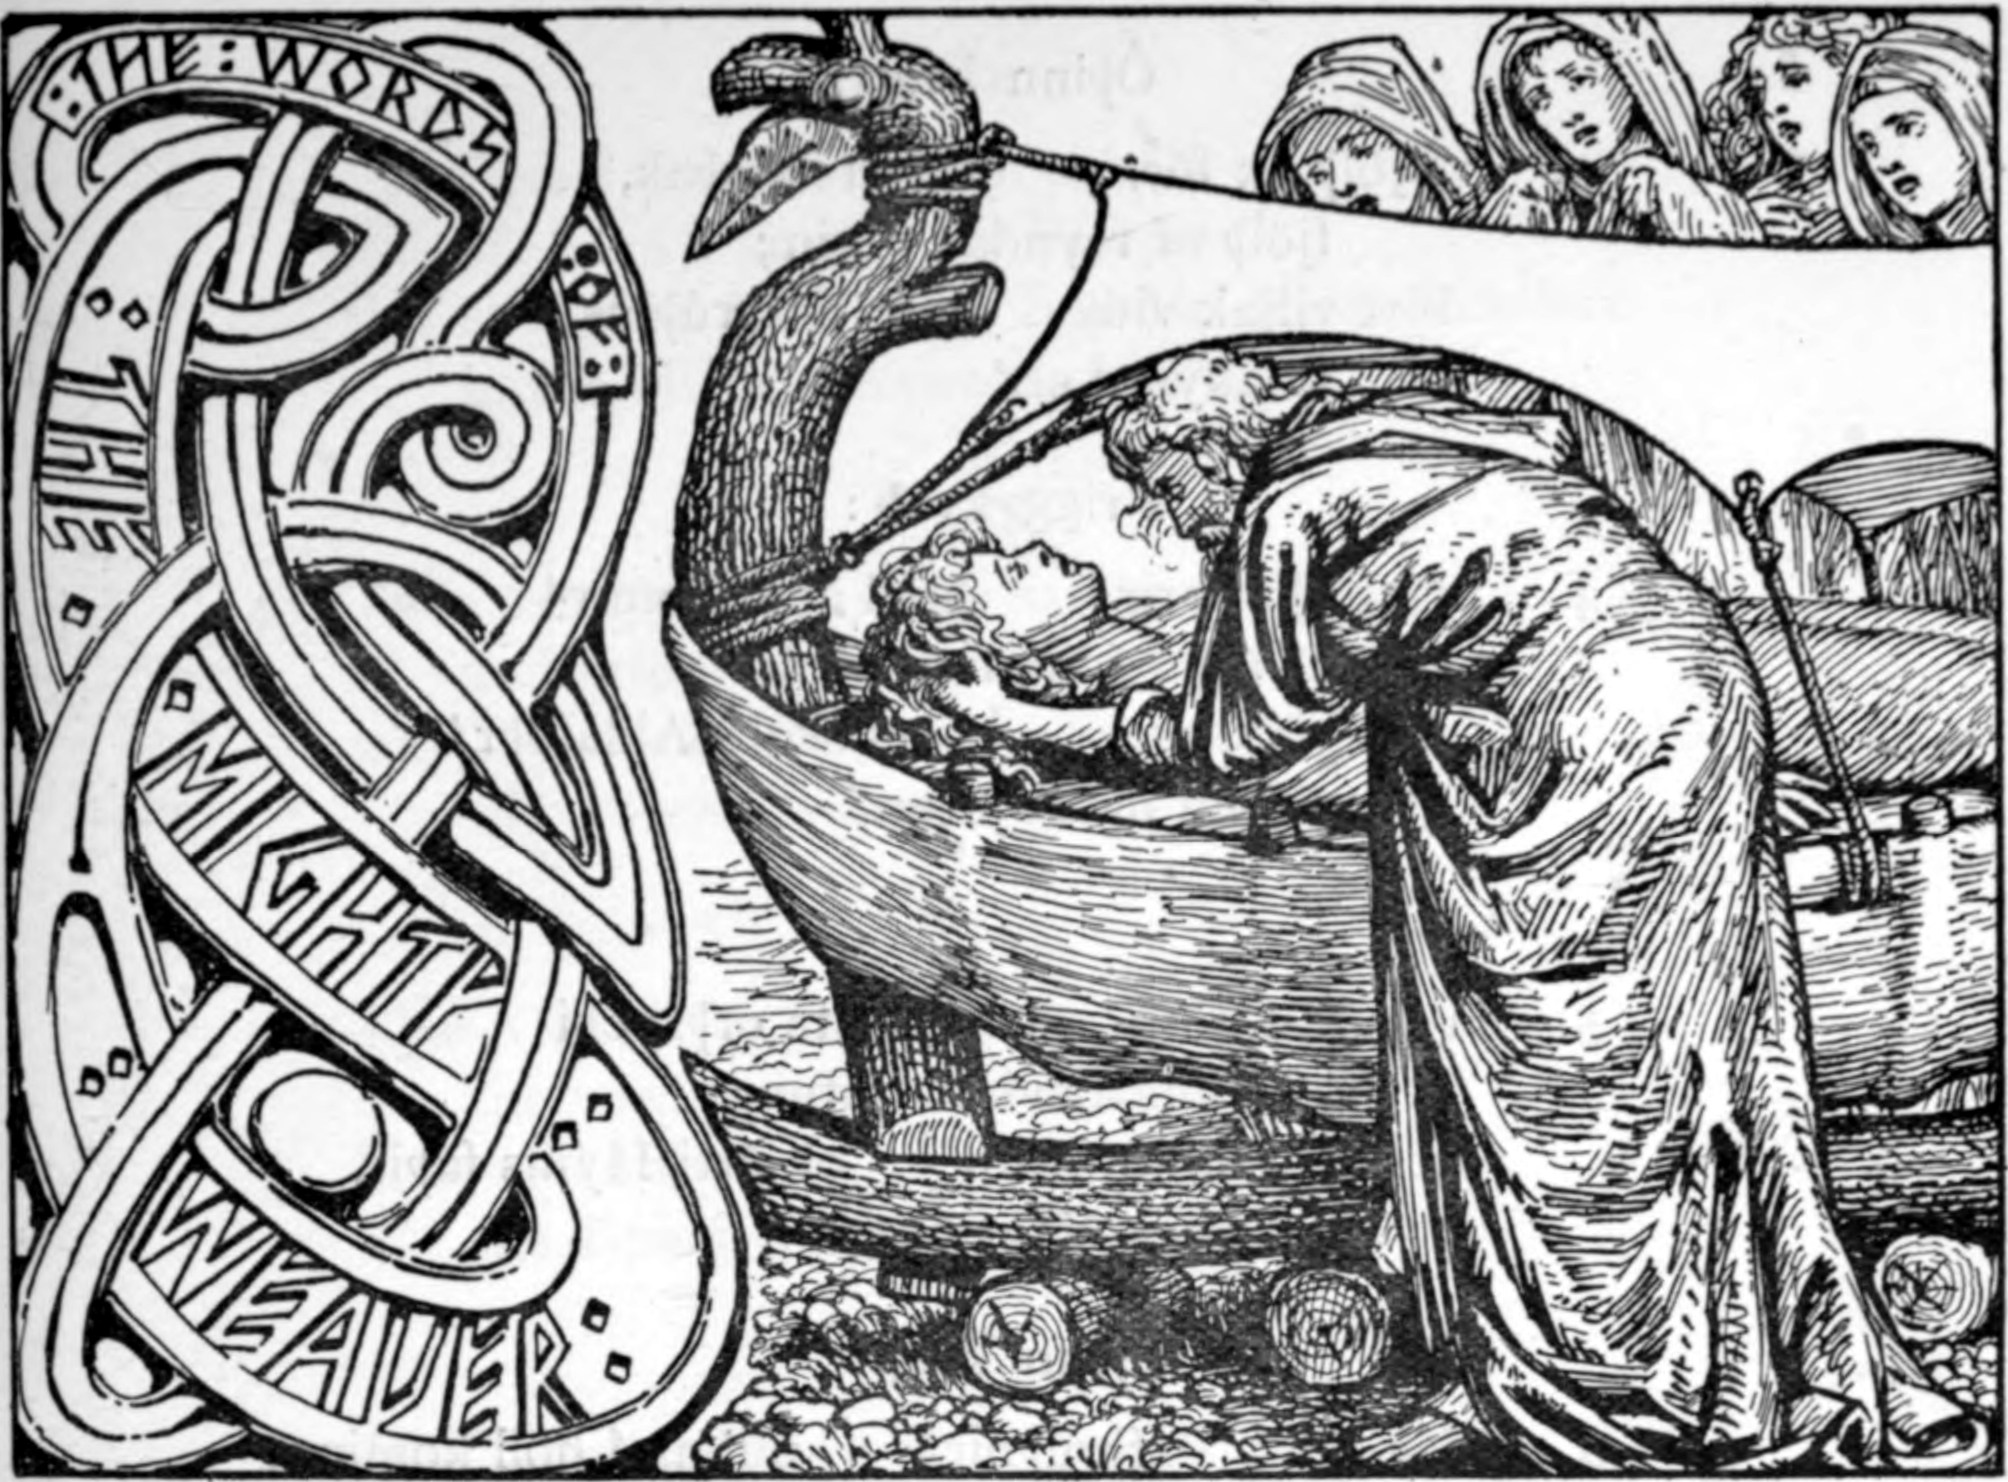 Odin's last words to Baldr (1908) by W. G. Collingwood.